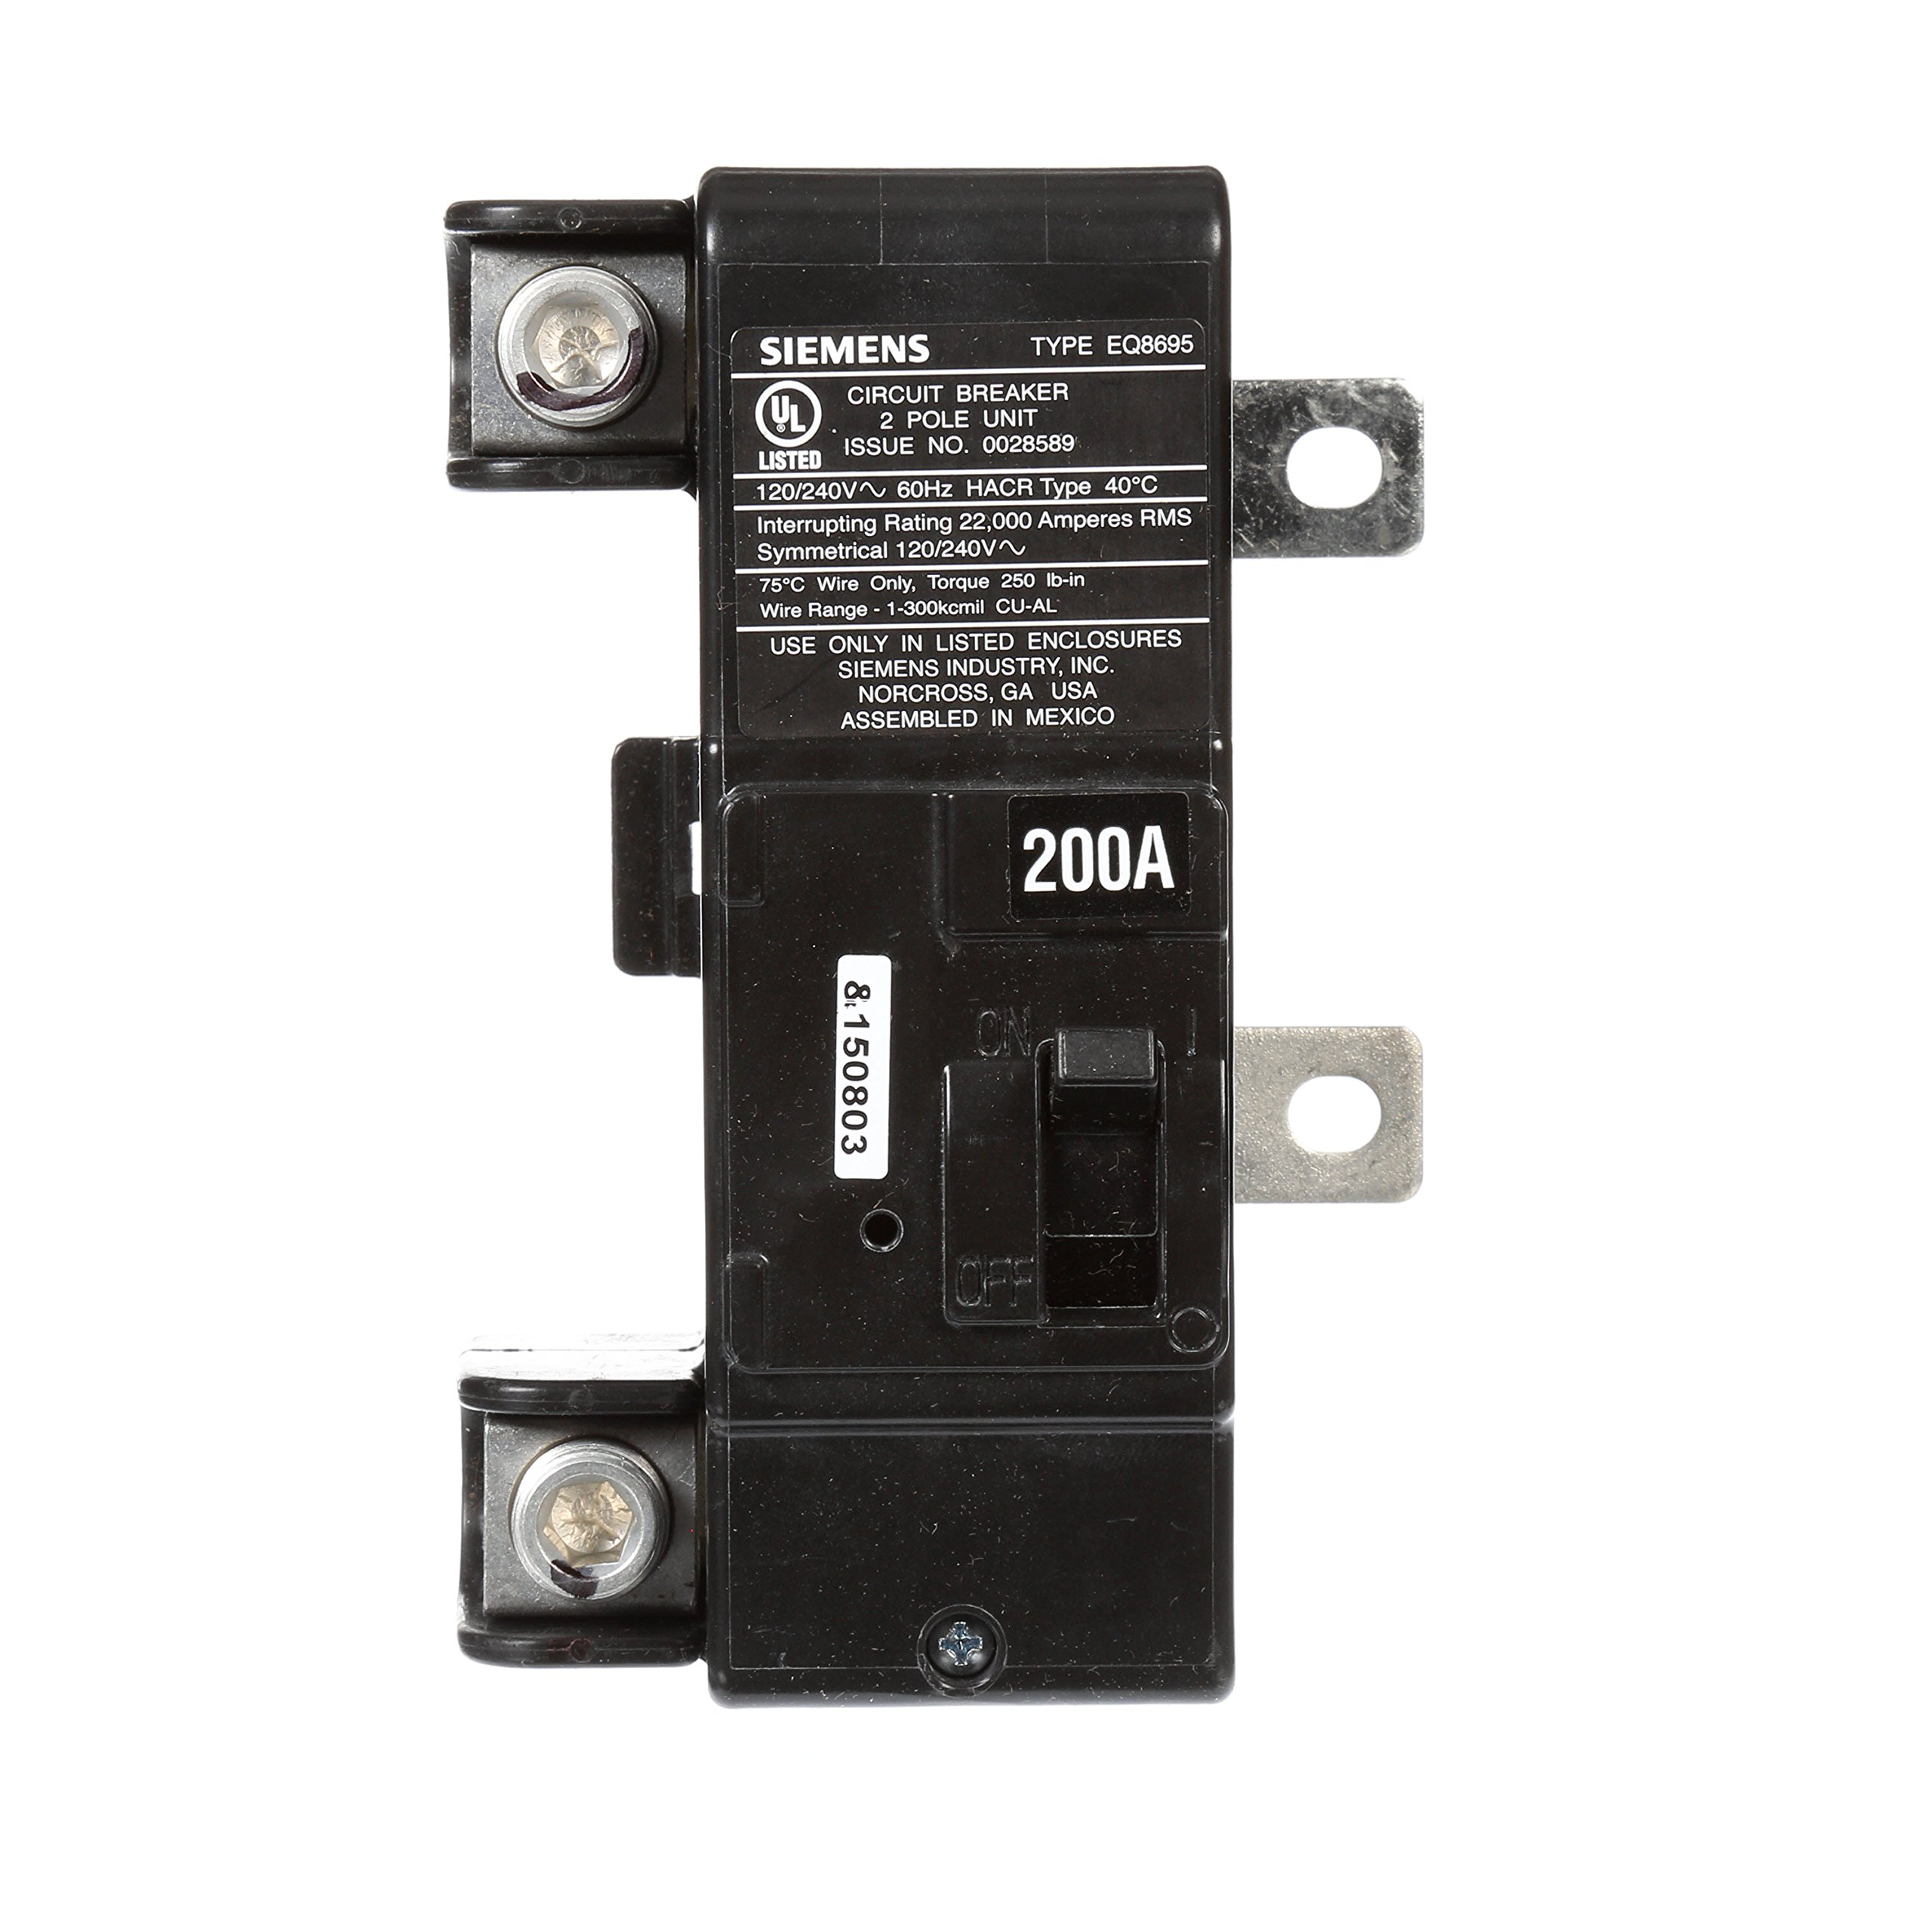 Best Rated In Circuit Breakers Helpful Customer Reviews How To Build A Simple Breaker Unit Siemens Mbk200a 200 Amp Main For Use Ultimate Type Load Centers Product